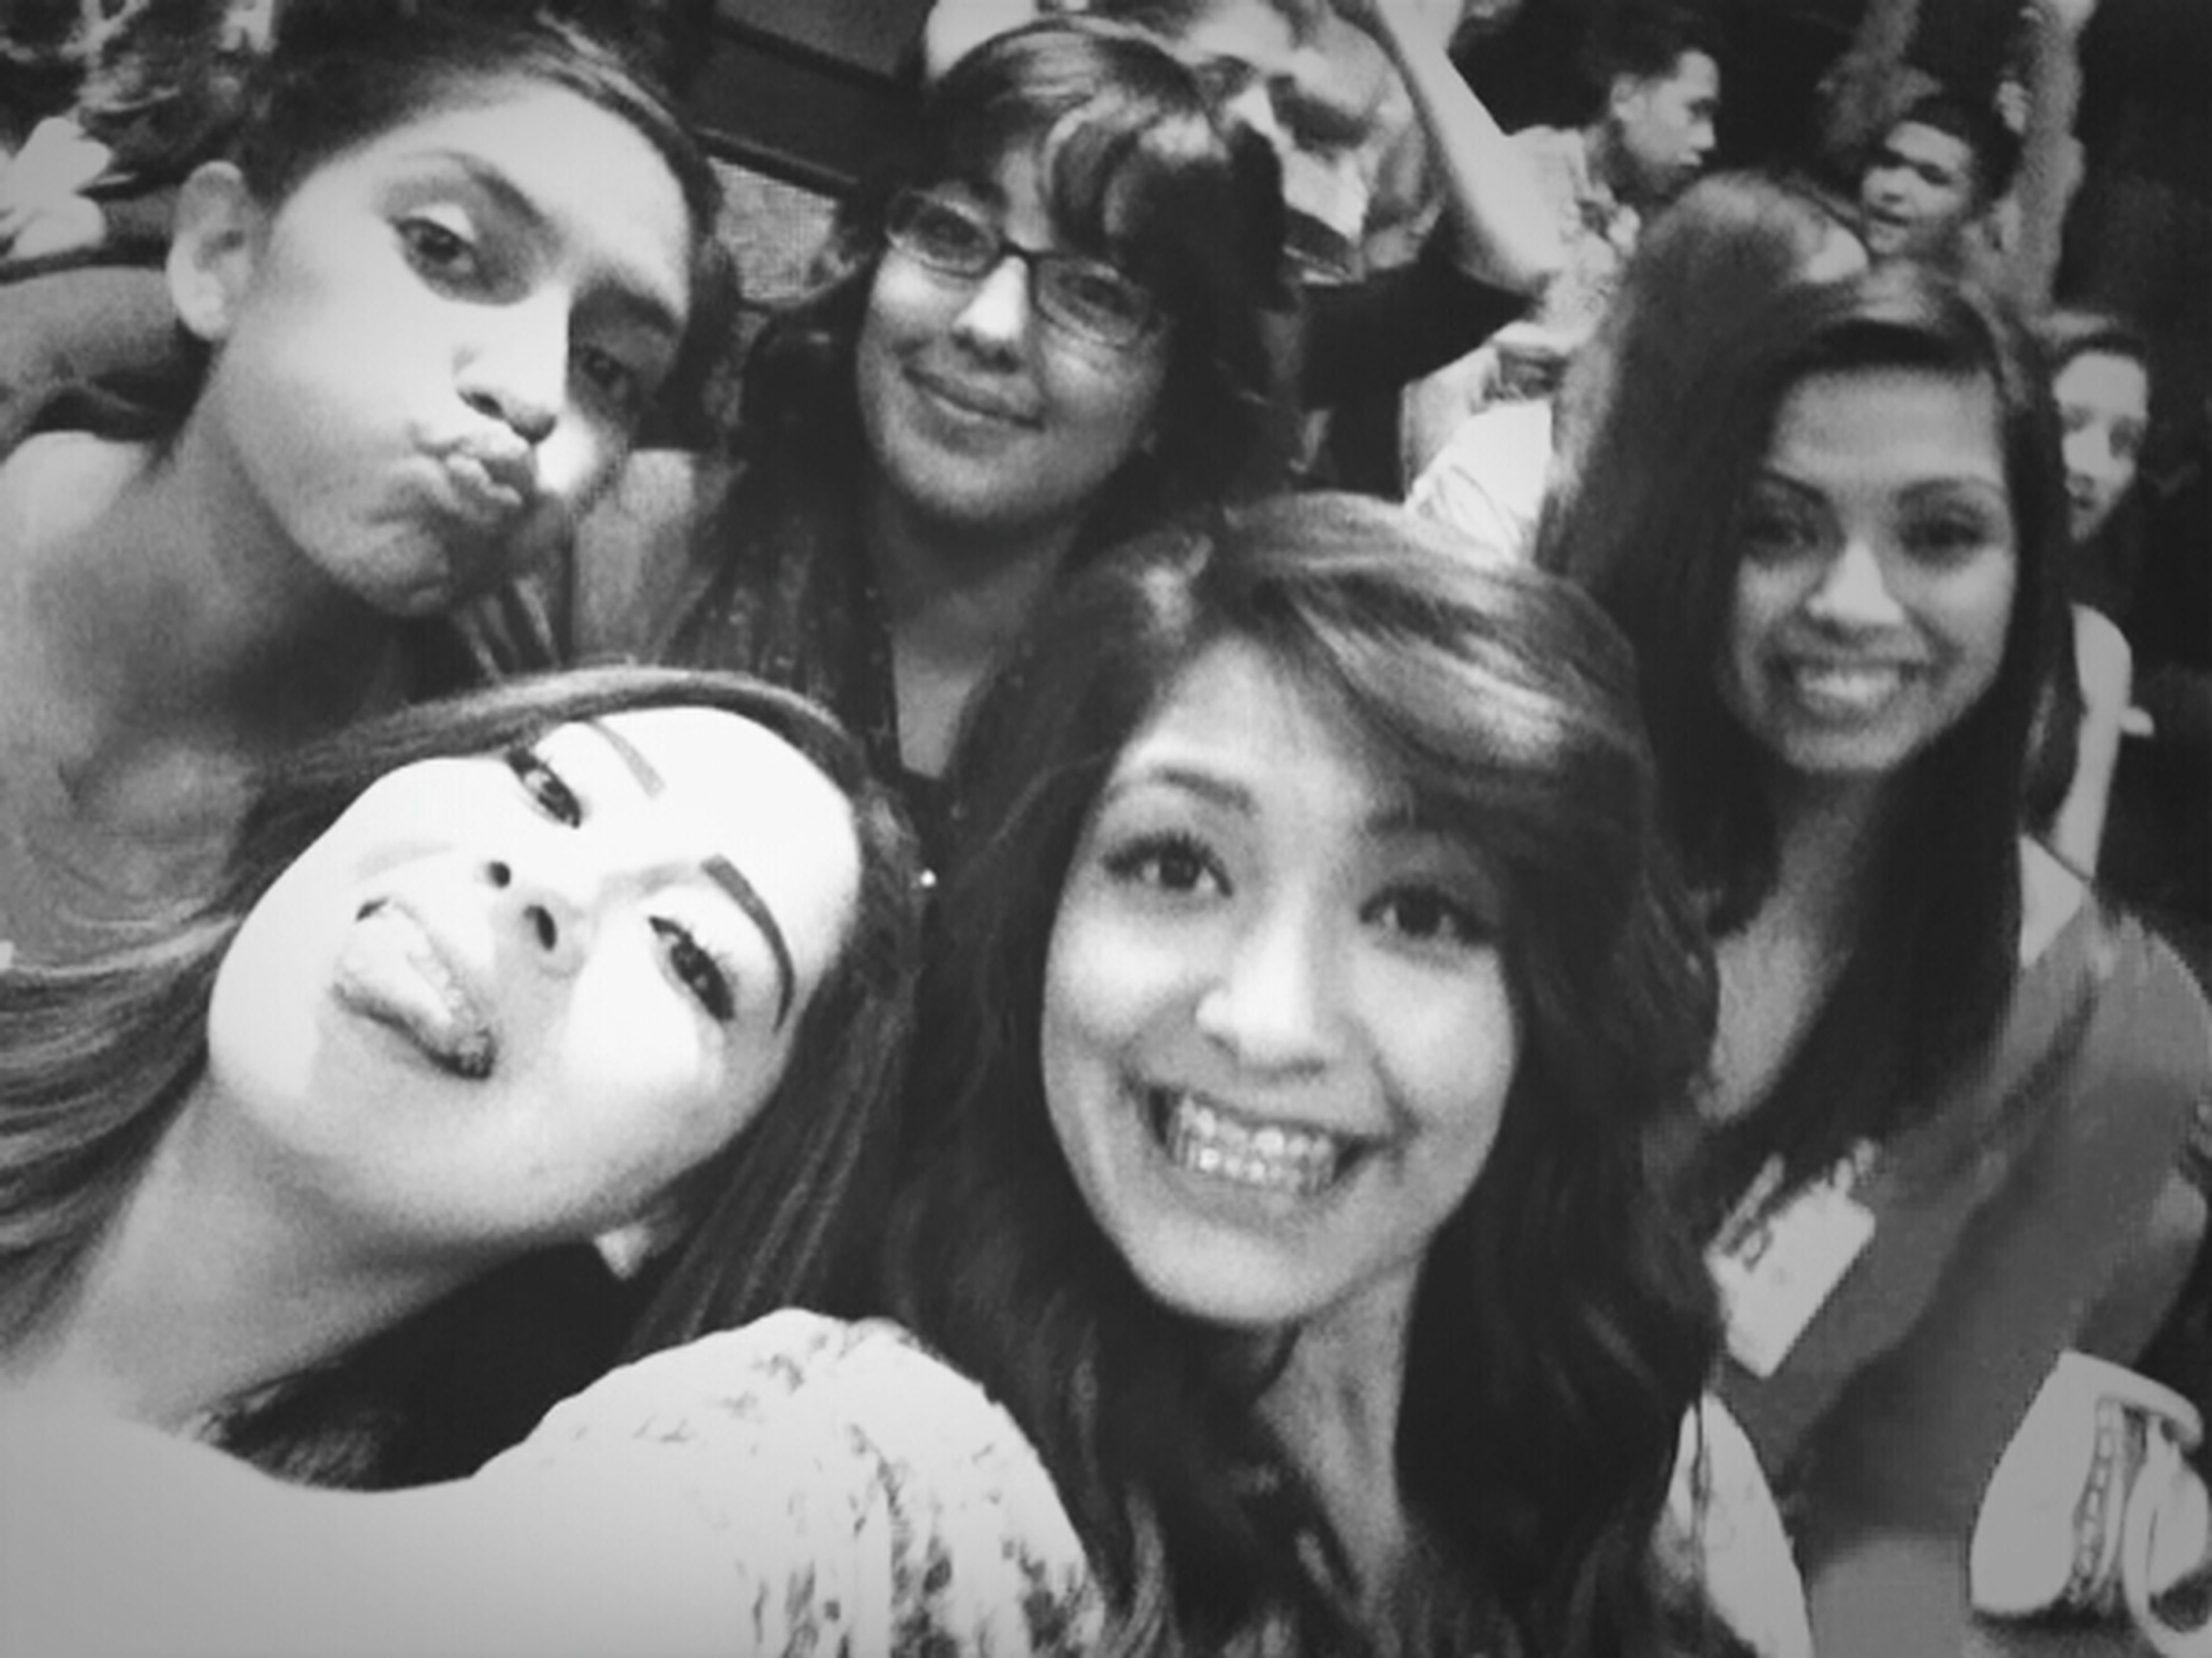 Our Last Pep Rally